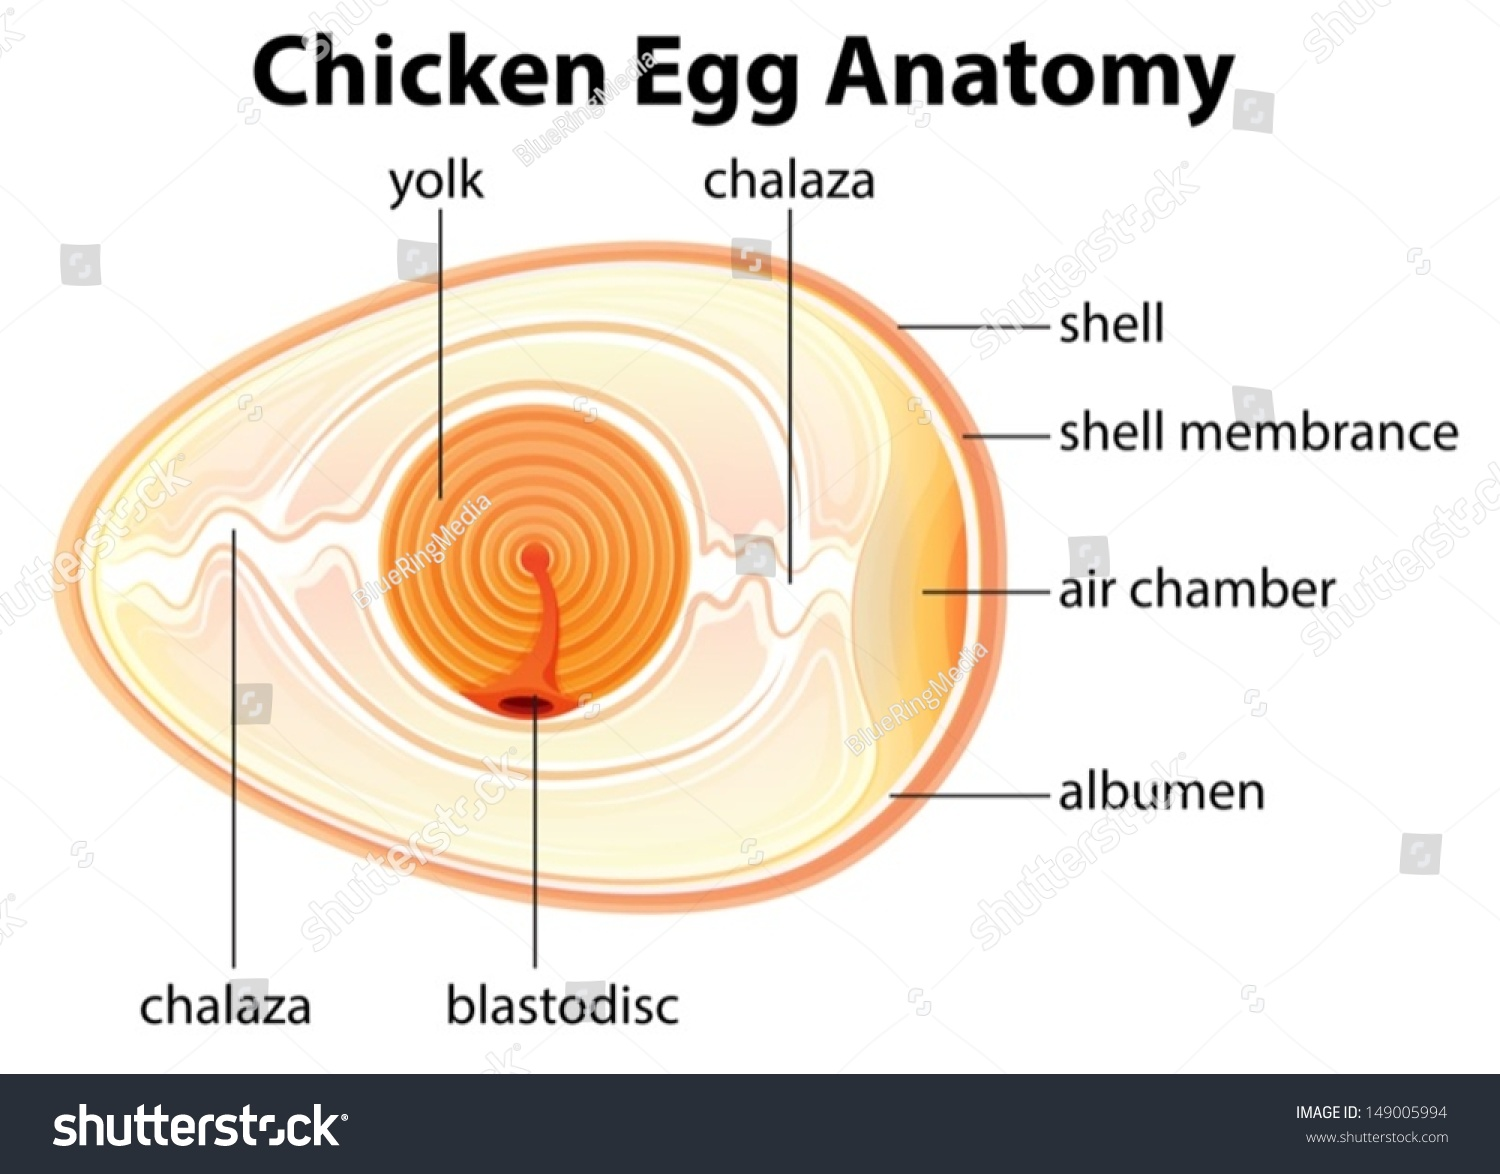 Illustration Showing Chicken Egg Anatomy Stock Vector (Royalty Free ...